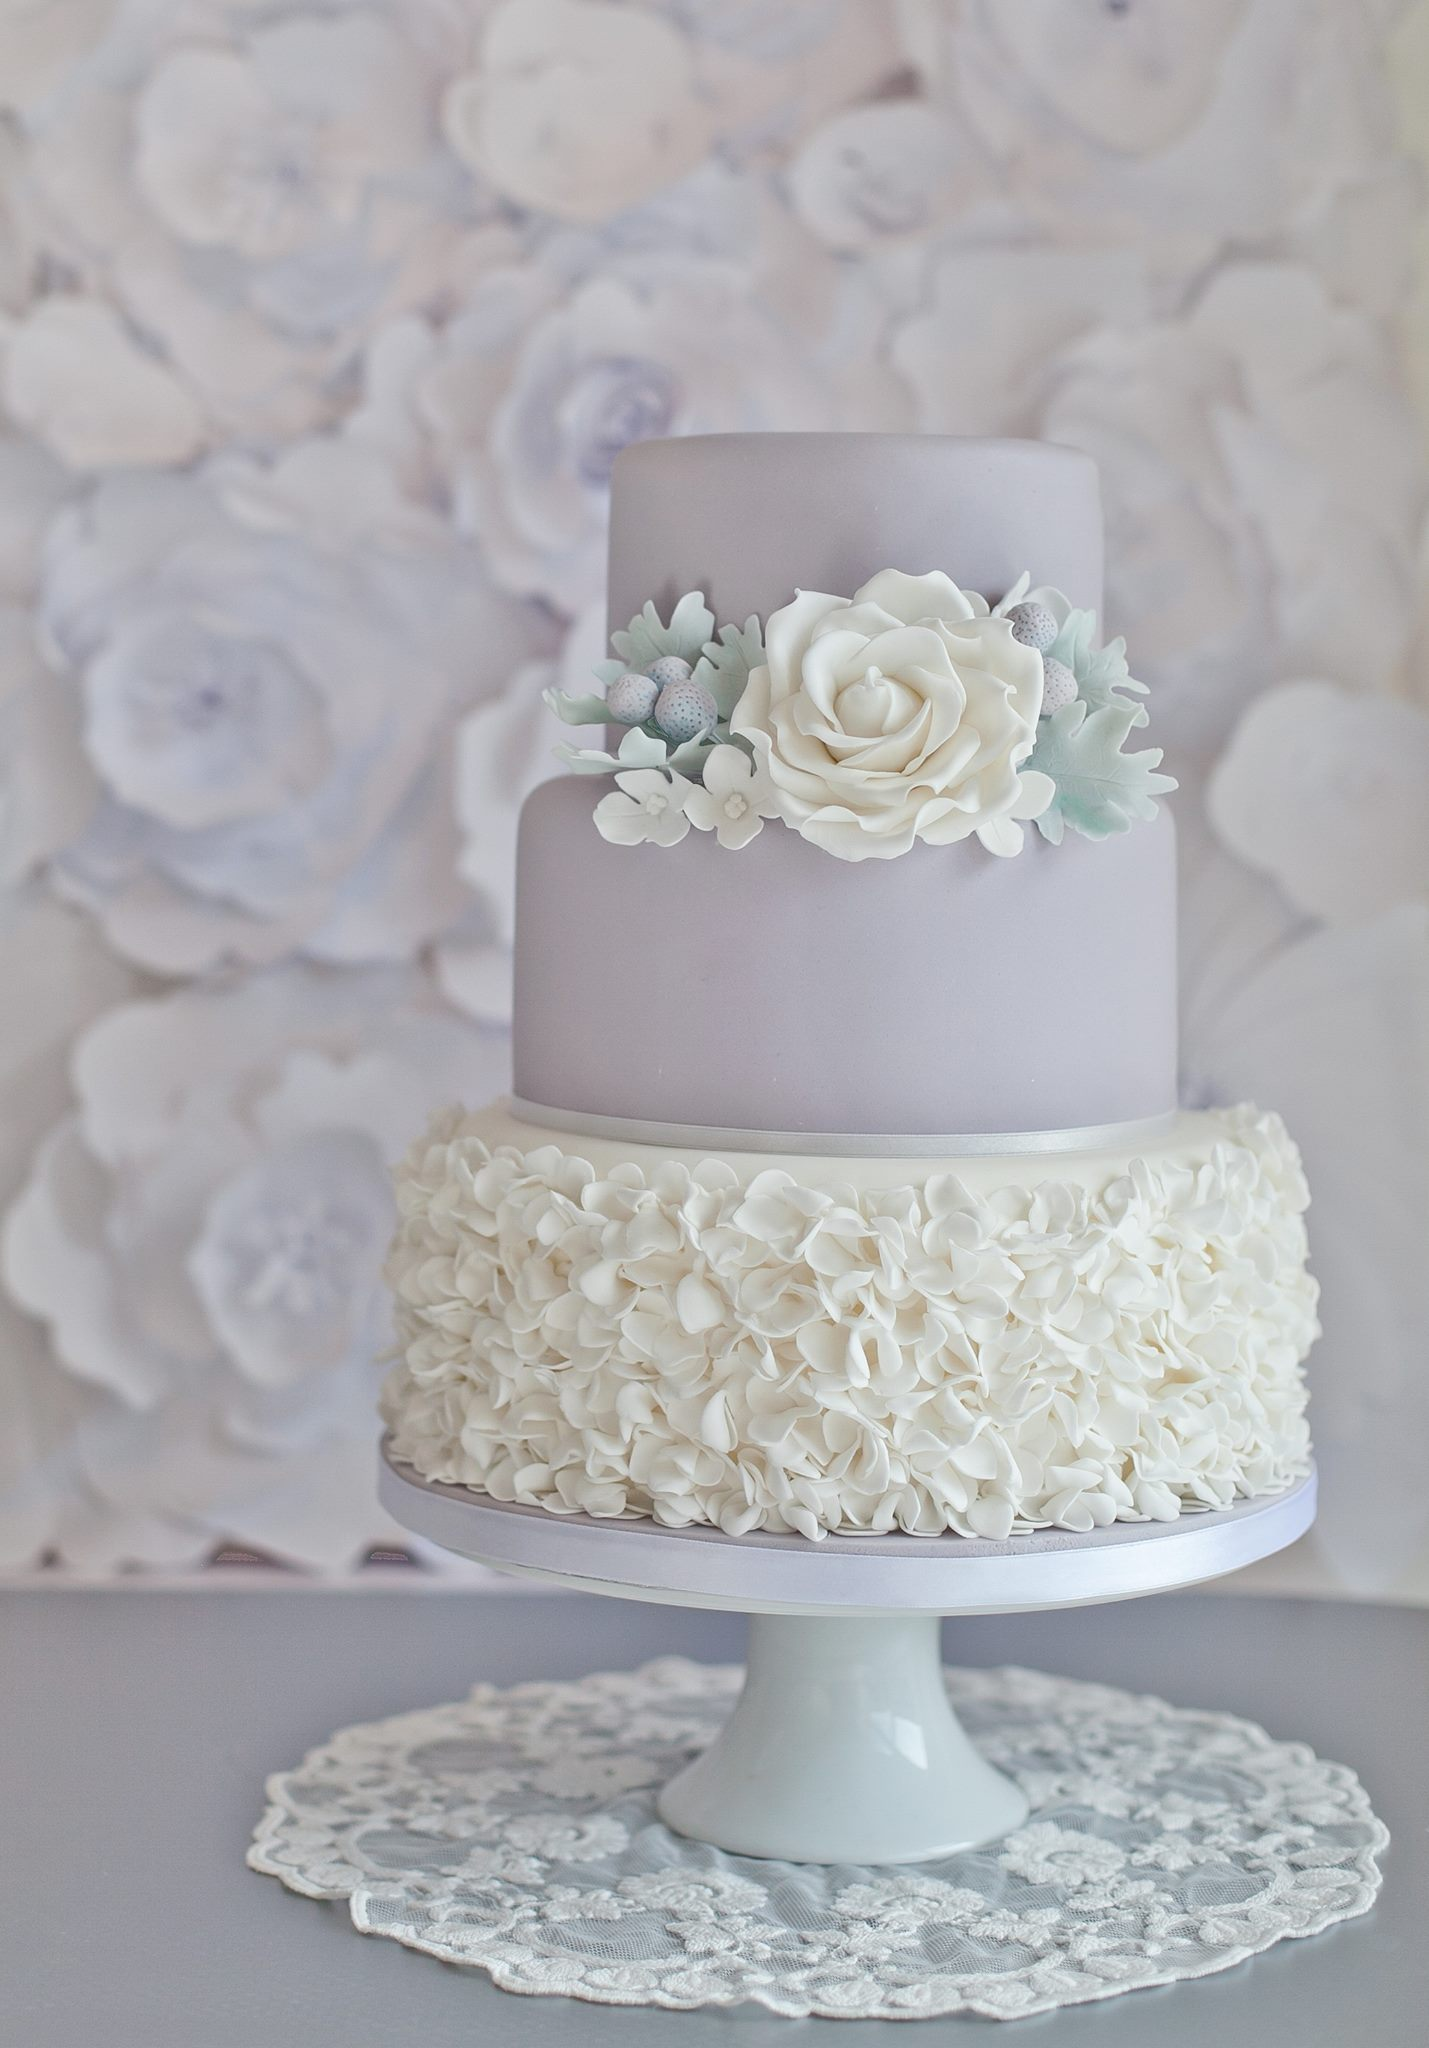 wedding-cake-ideas-7-05052014nz